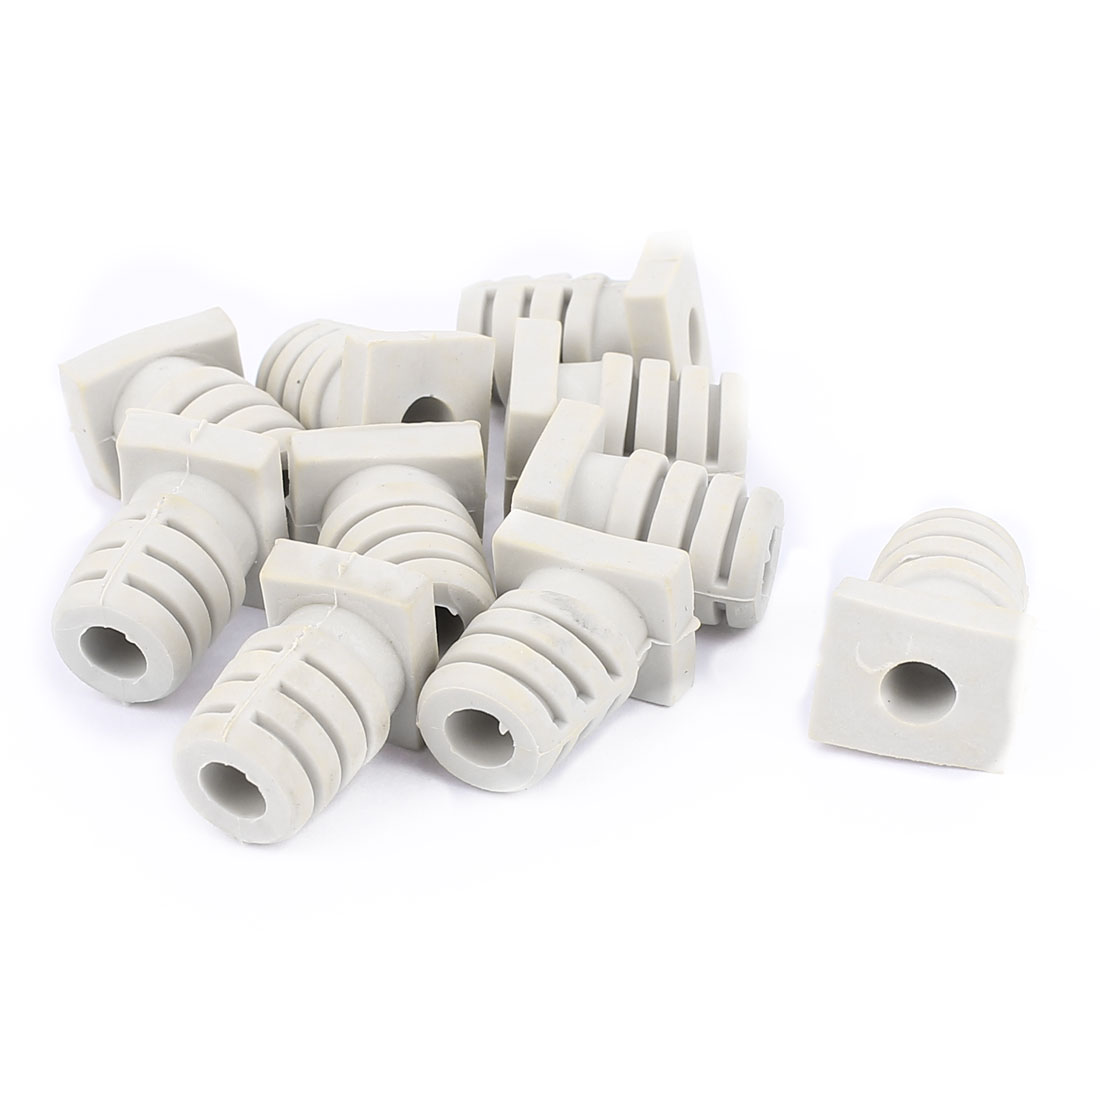 10pcs 5mm Inner Dia Rubber Strain Relief Cord Boot Protector Cable Sleeve Beige